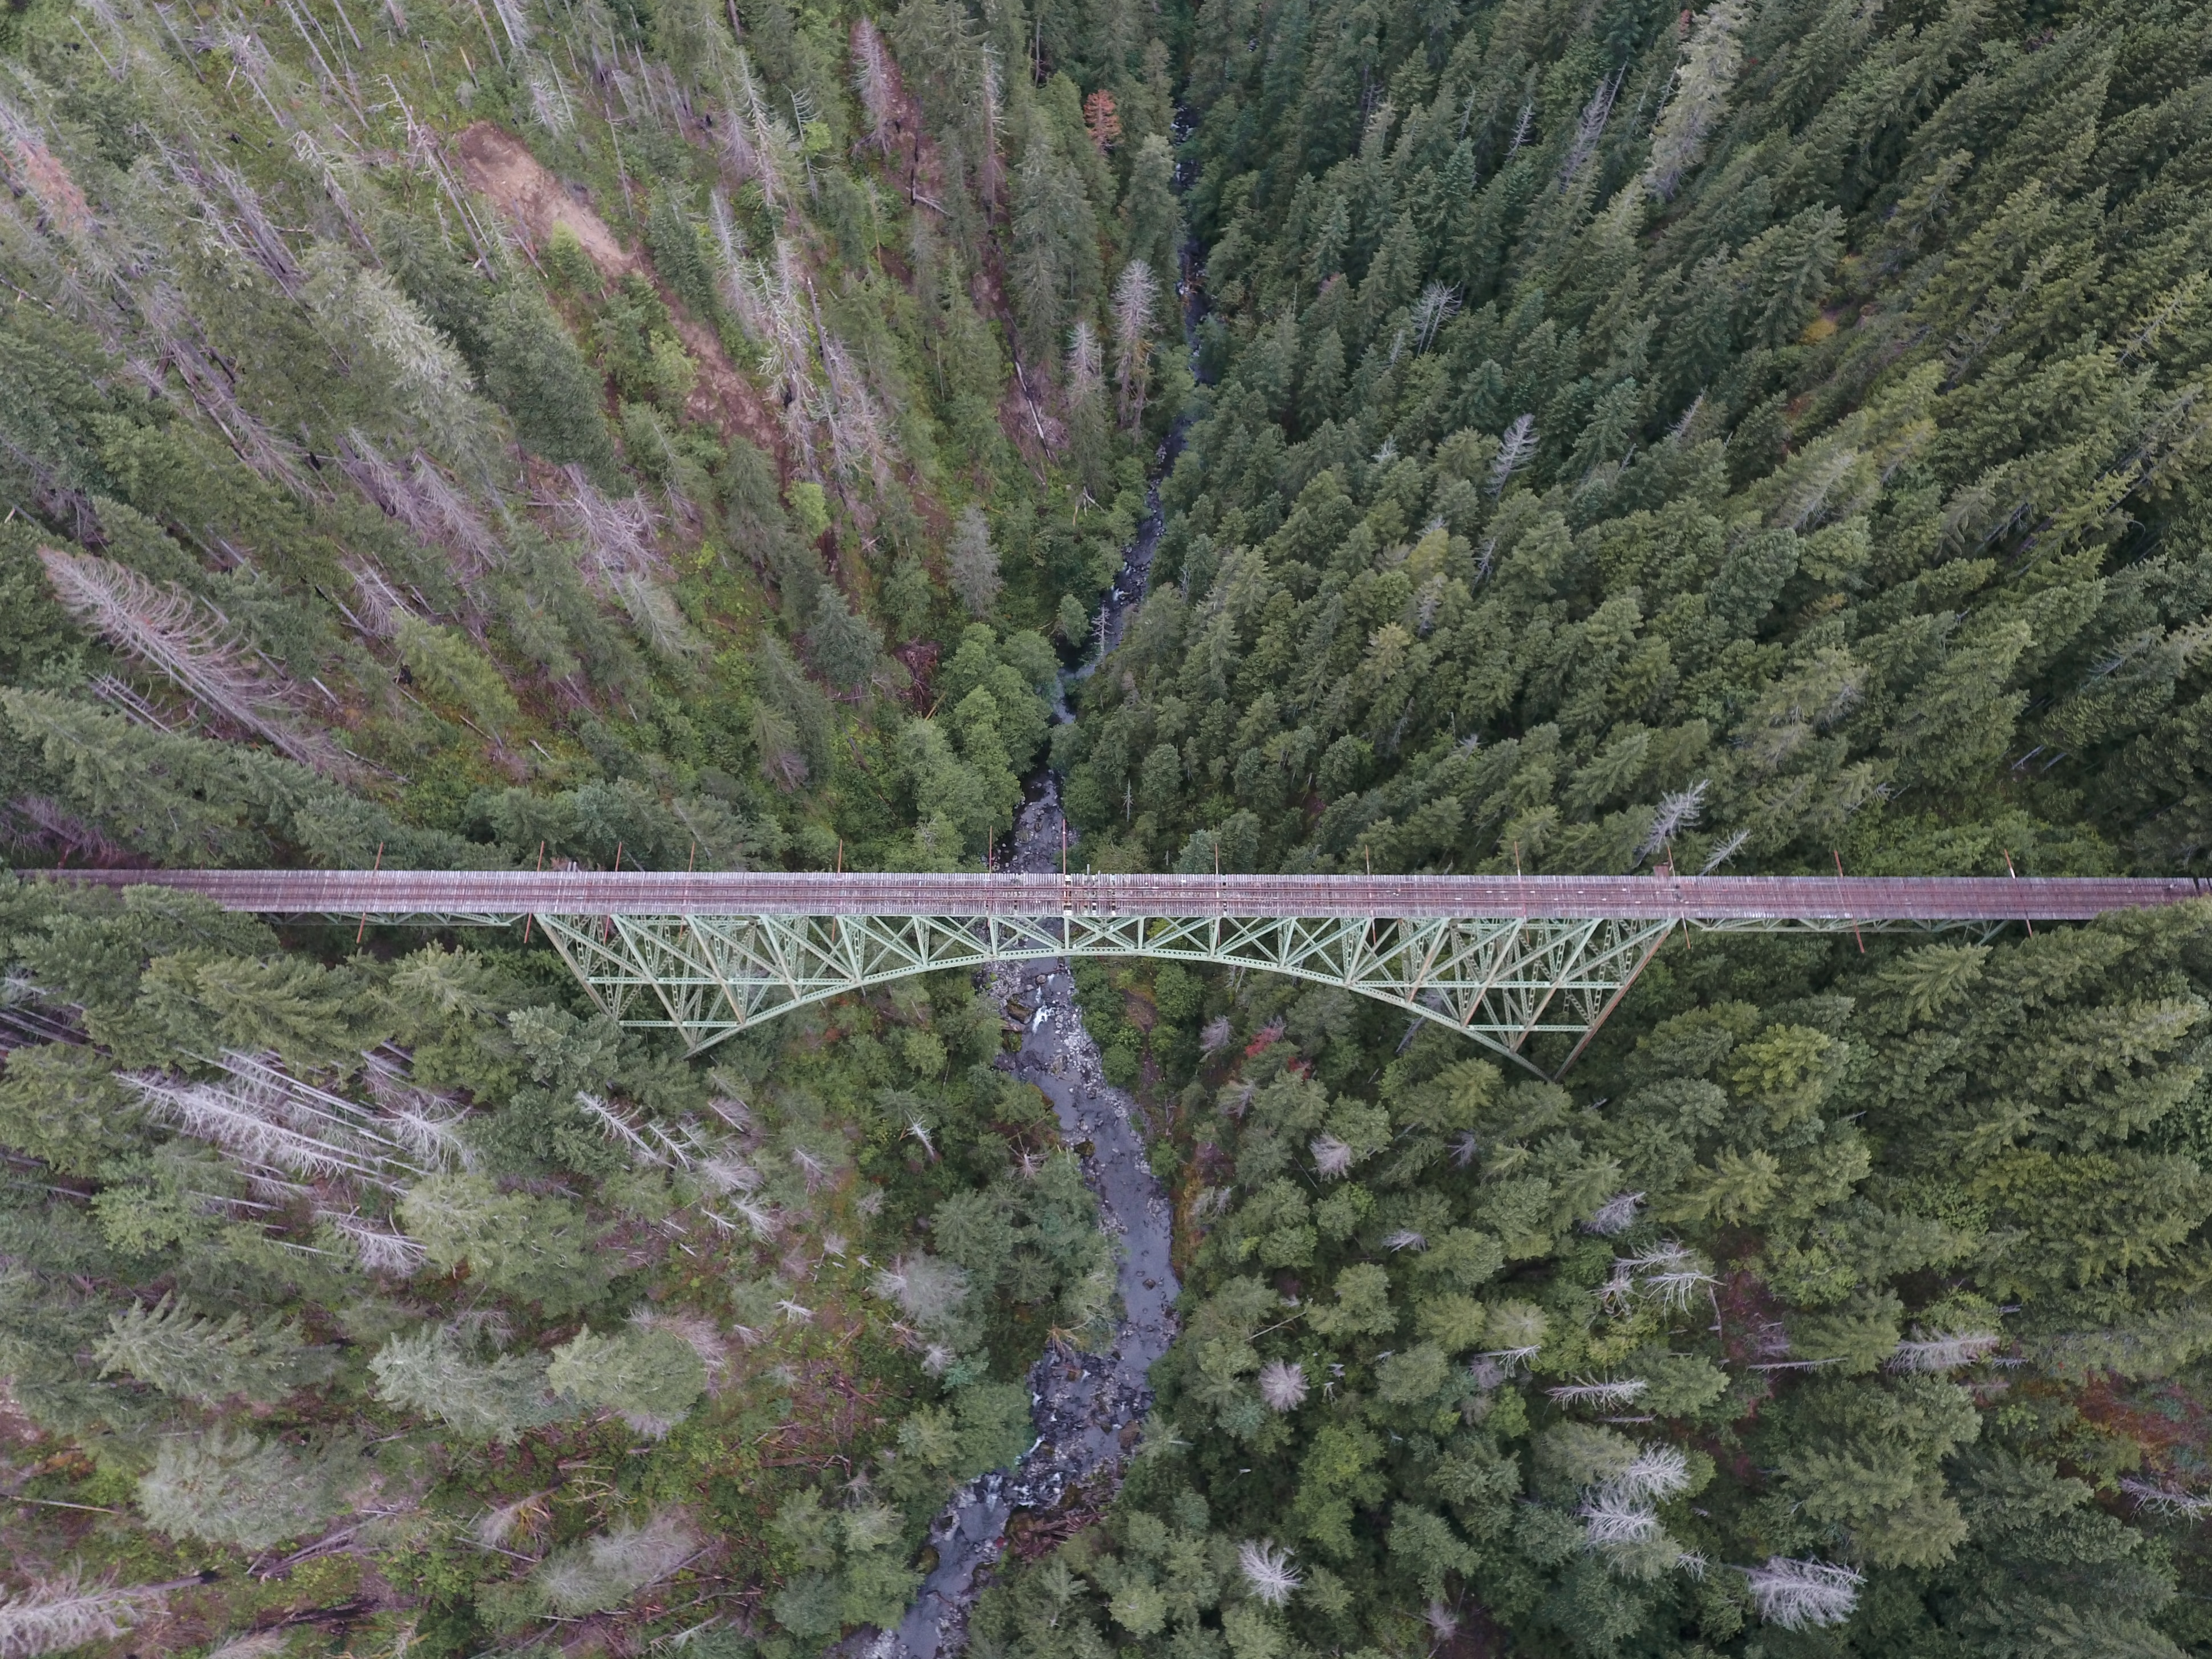 Forest with Bridge Over Top